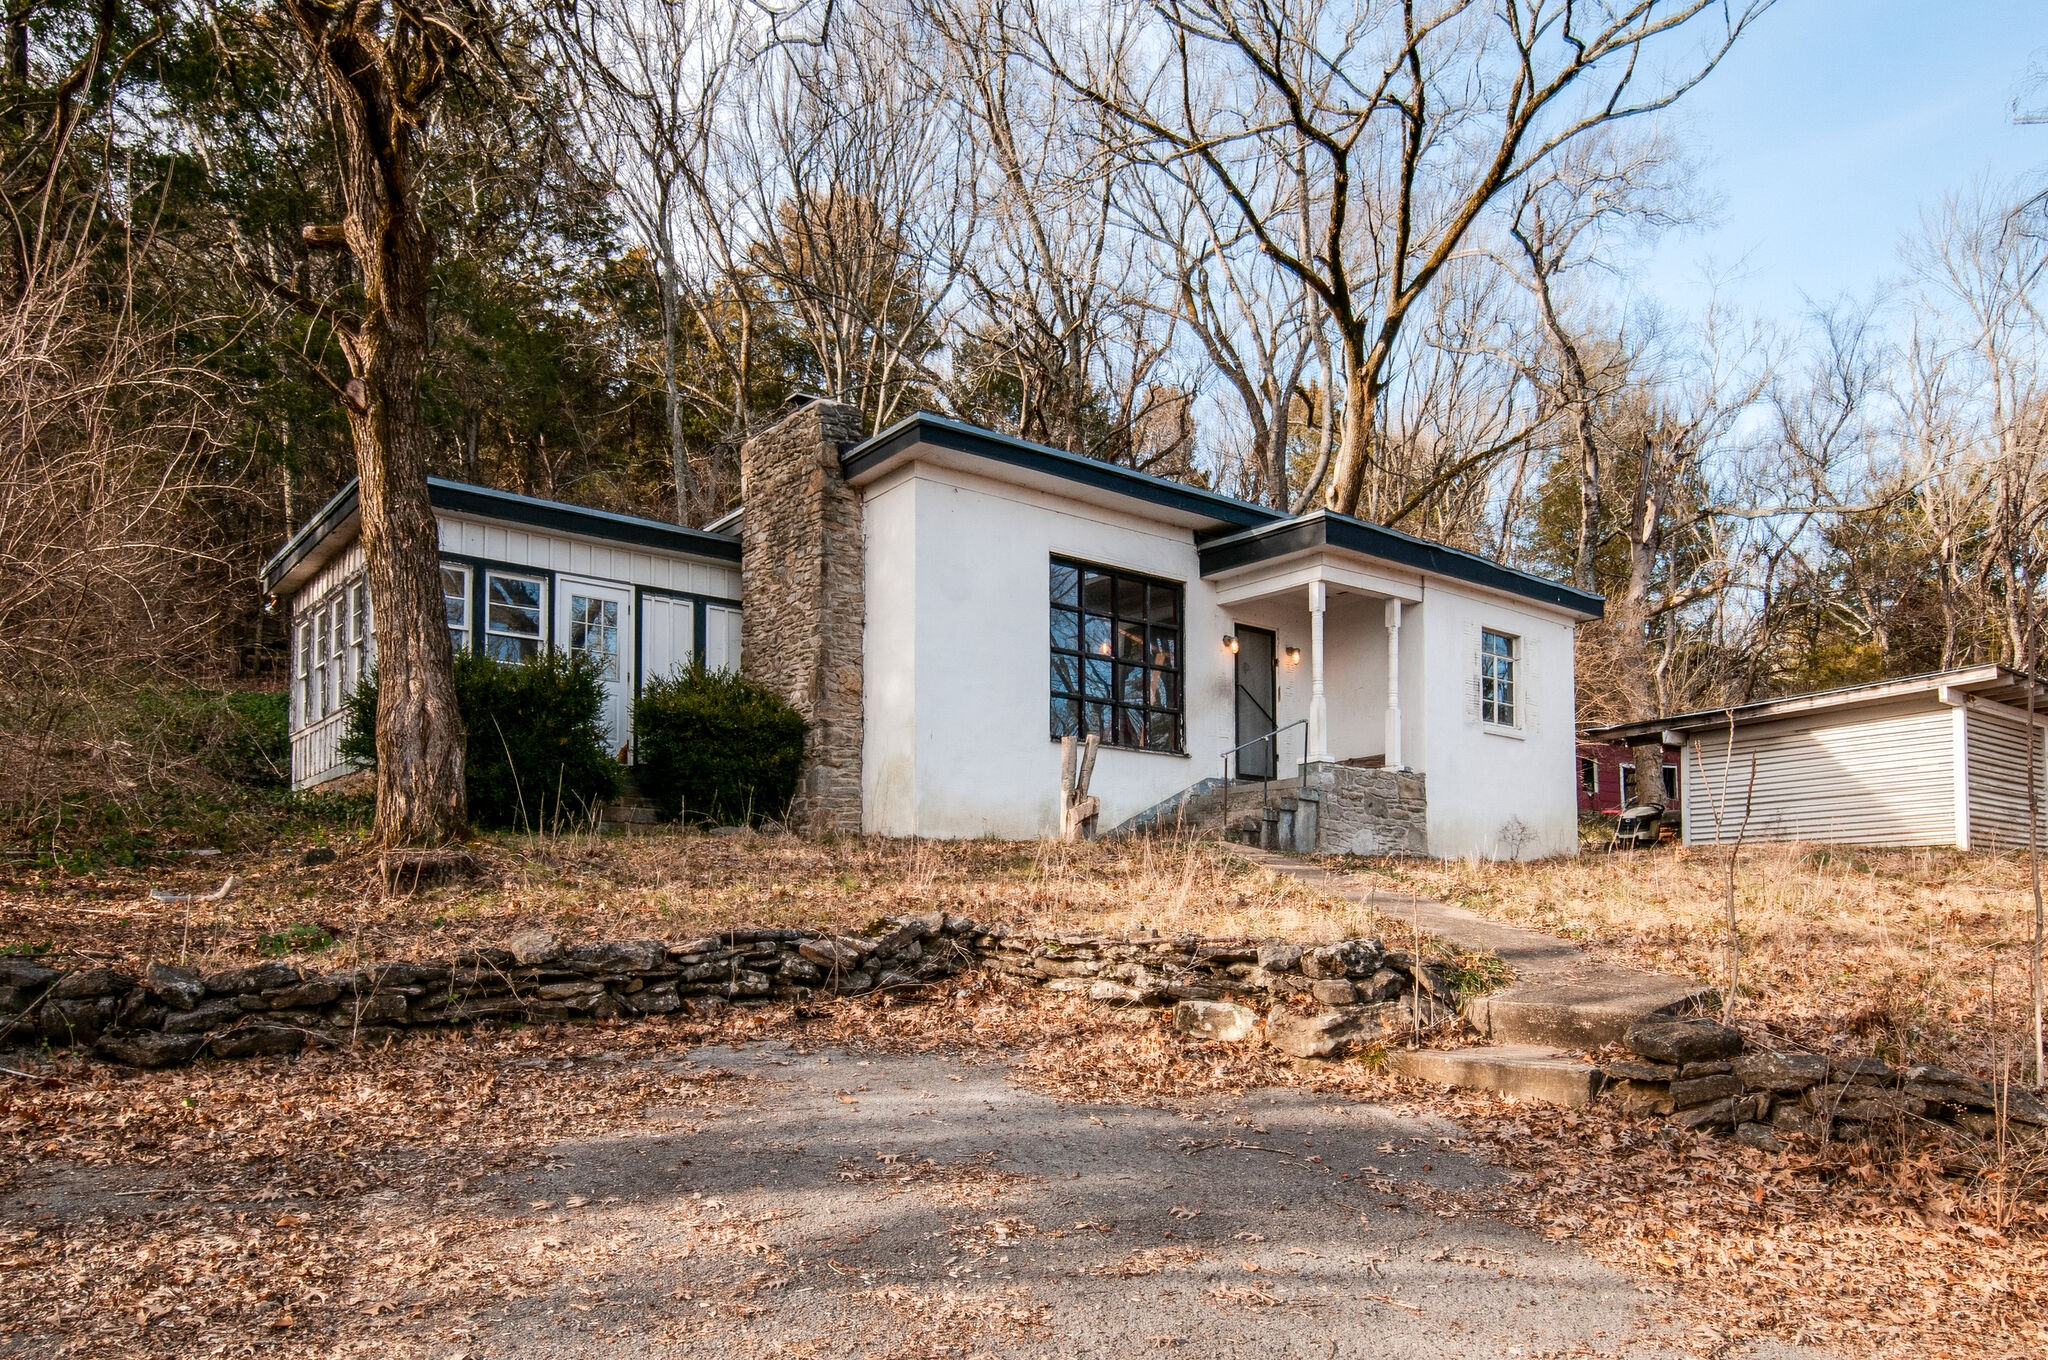 Amazing Private property on 1.4 wooded acres right across from Legends Golf Club ! * NEEDS TLC -Selling AS-IS - Offers due by 1/30 @ 6:30pm w/ deadline to respond by Sun @ noon. Perfect for building site, renovating and/or affordable living in Williamson County